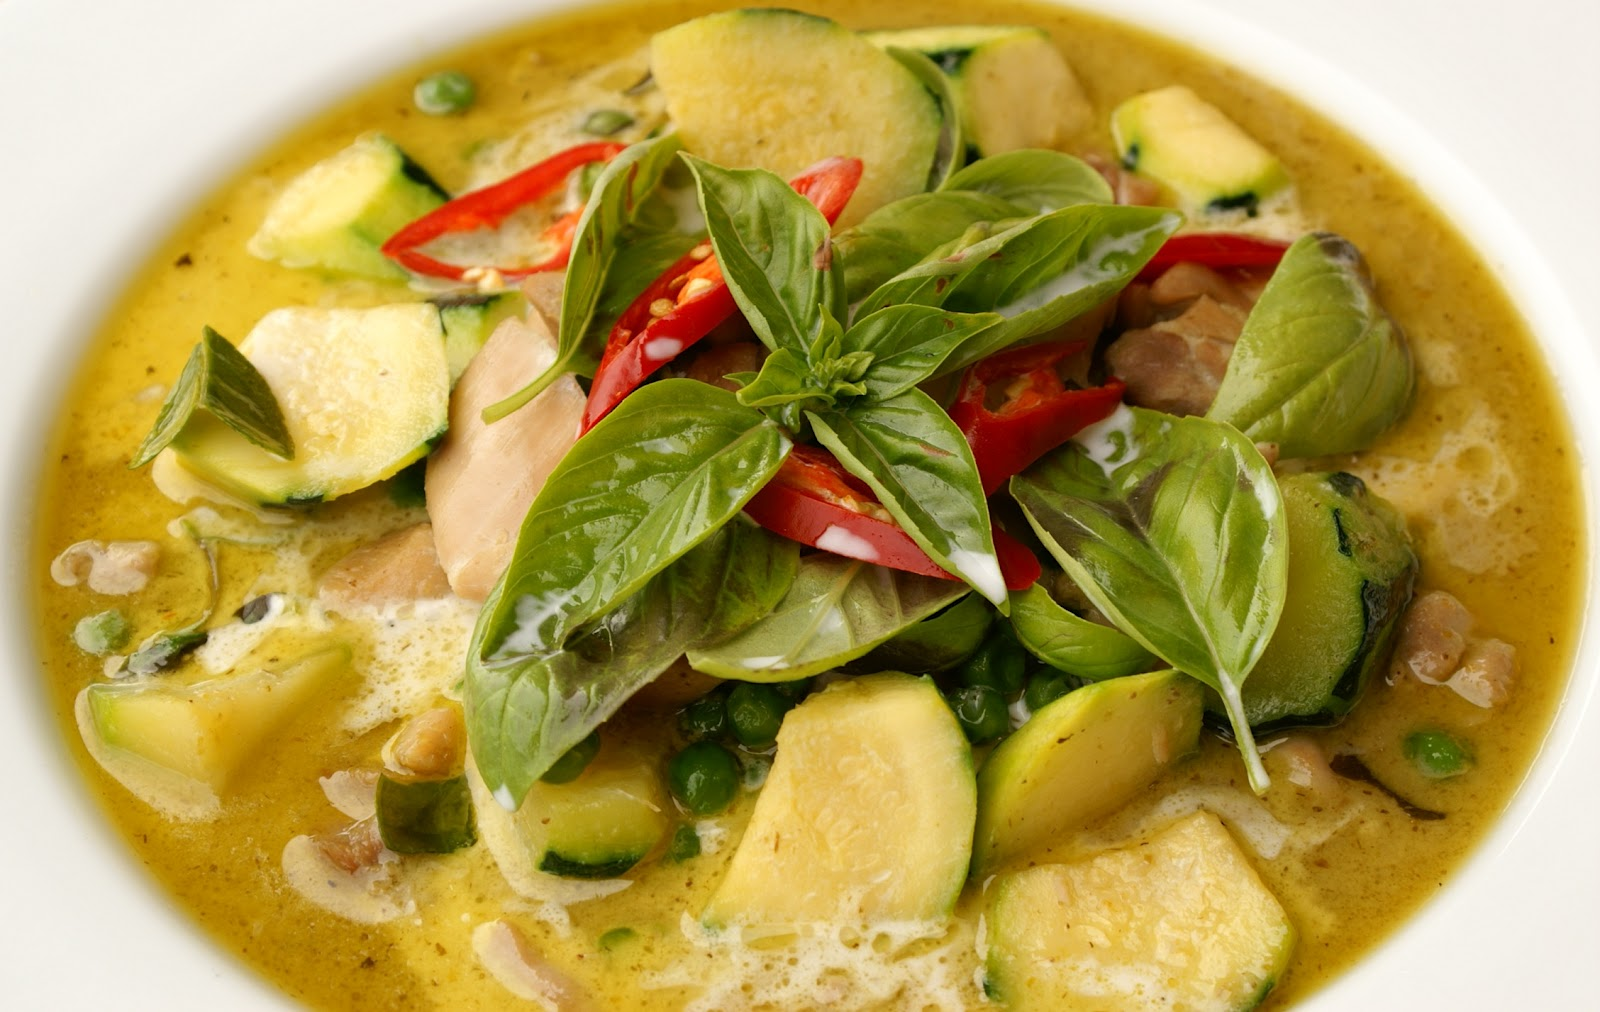 Recipes - Easy Thai Food: Green Curry Chicken (Kaeng Keaw ...